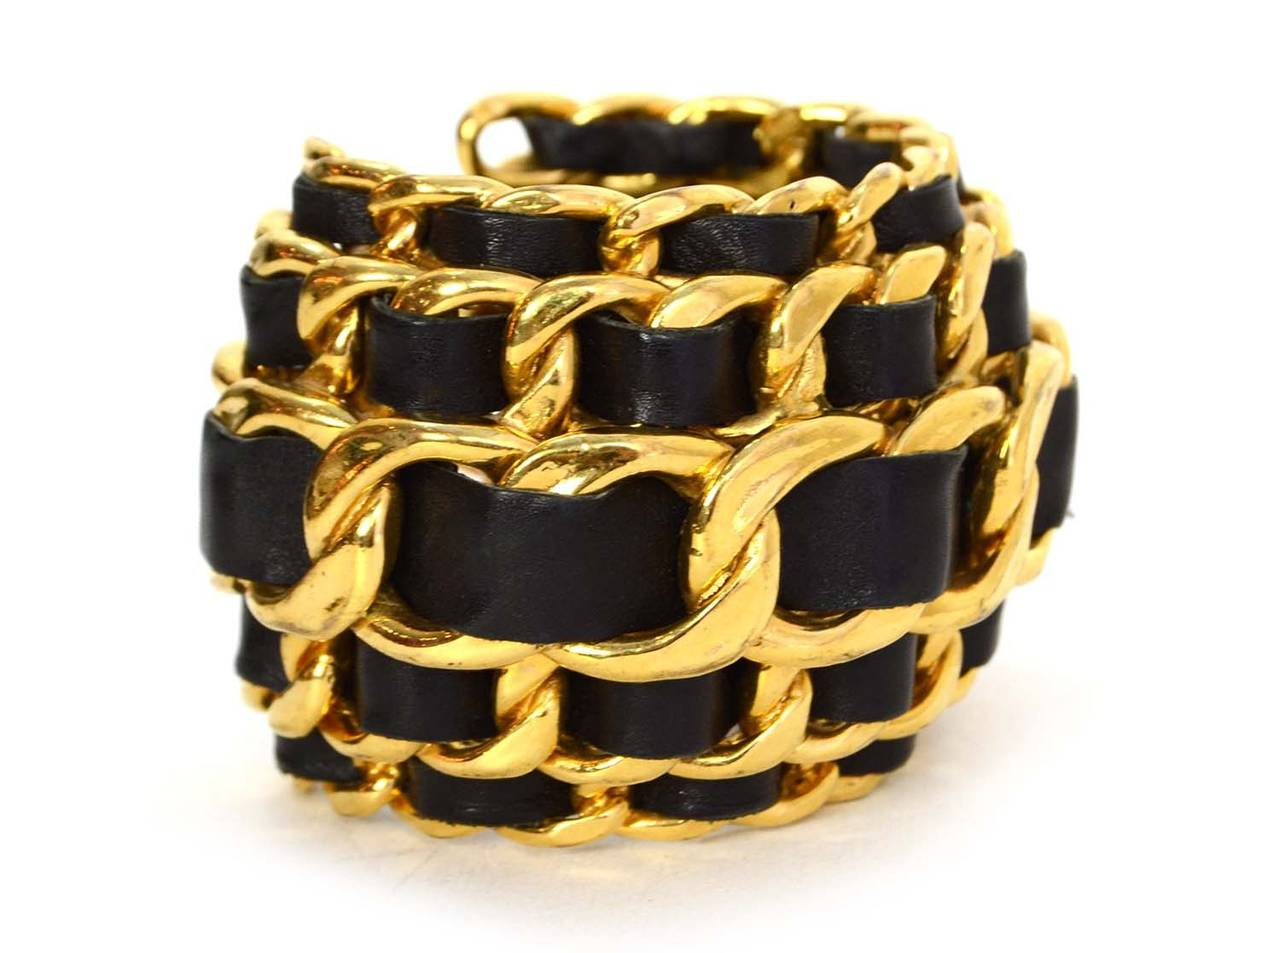 CHANEL Vintage '87 Black Leather Woven Gold Five-Tier Chain Link Cuff Bracelet 2